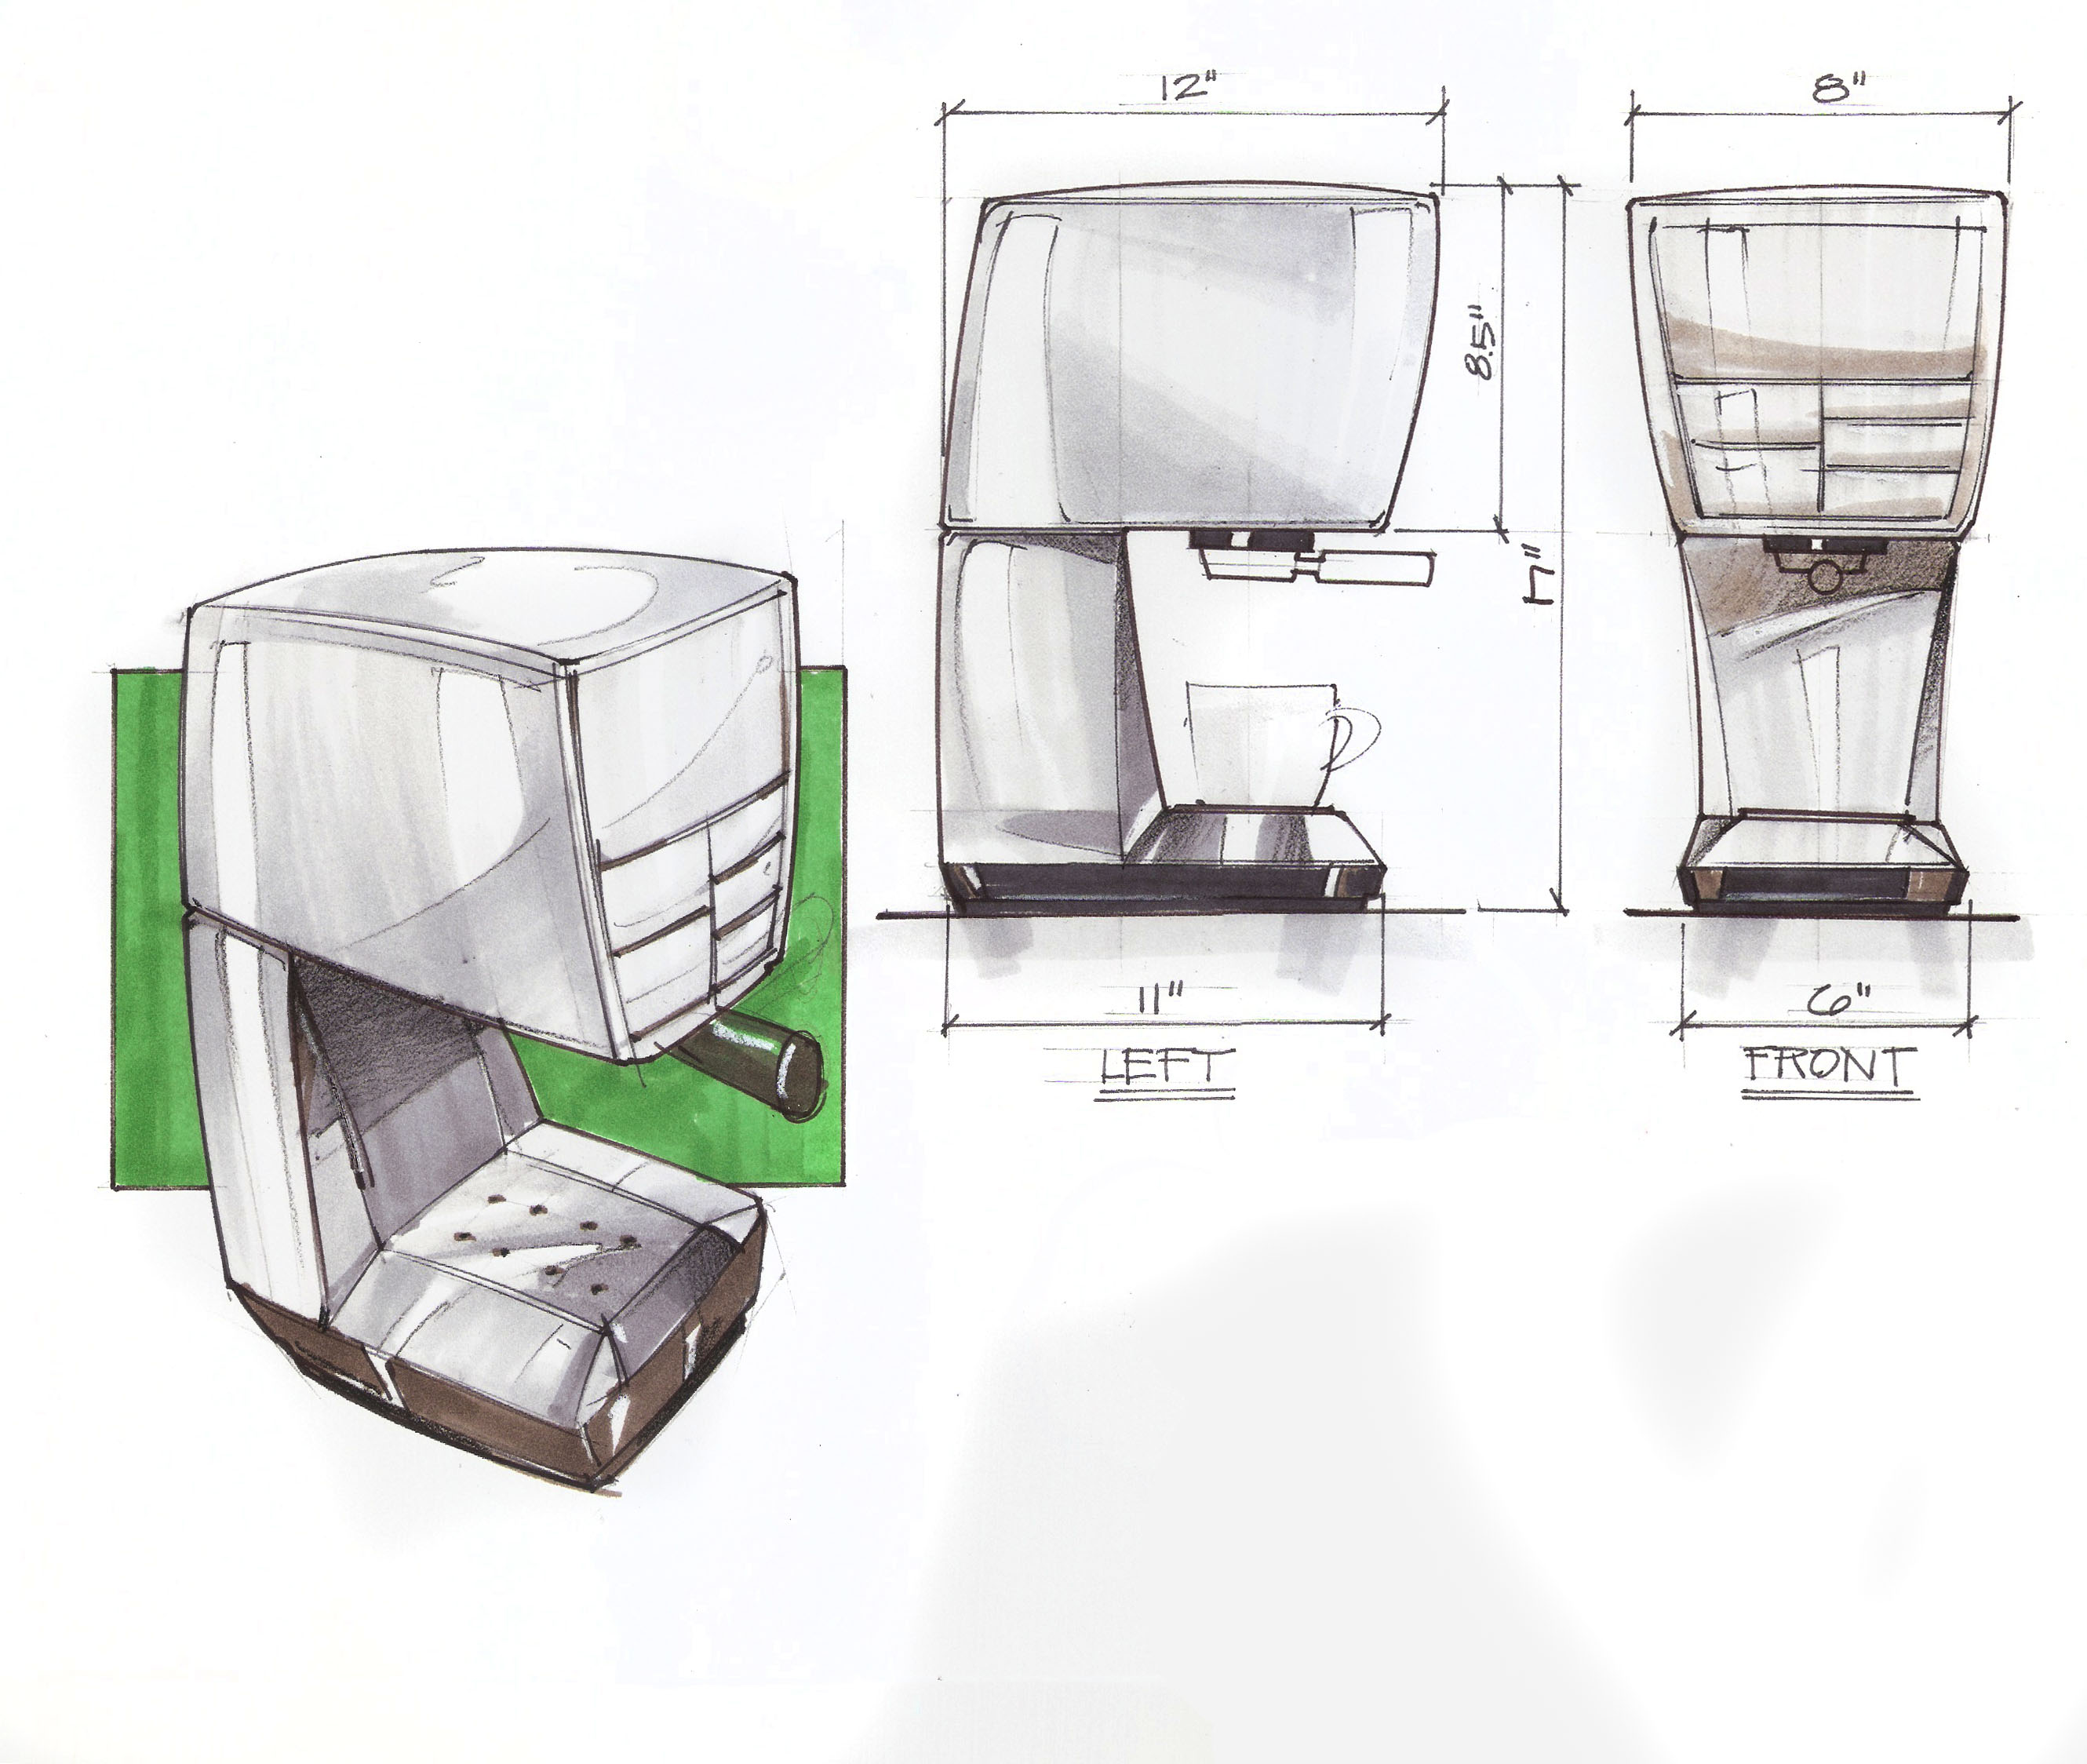 Coffee Maker Design Problem : 5 Exercises To Help You Learn To Draw Perspective